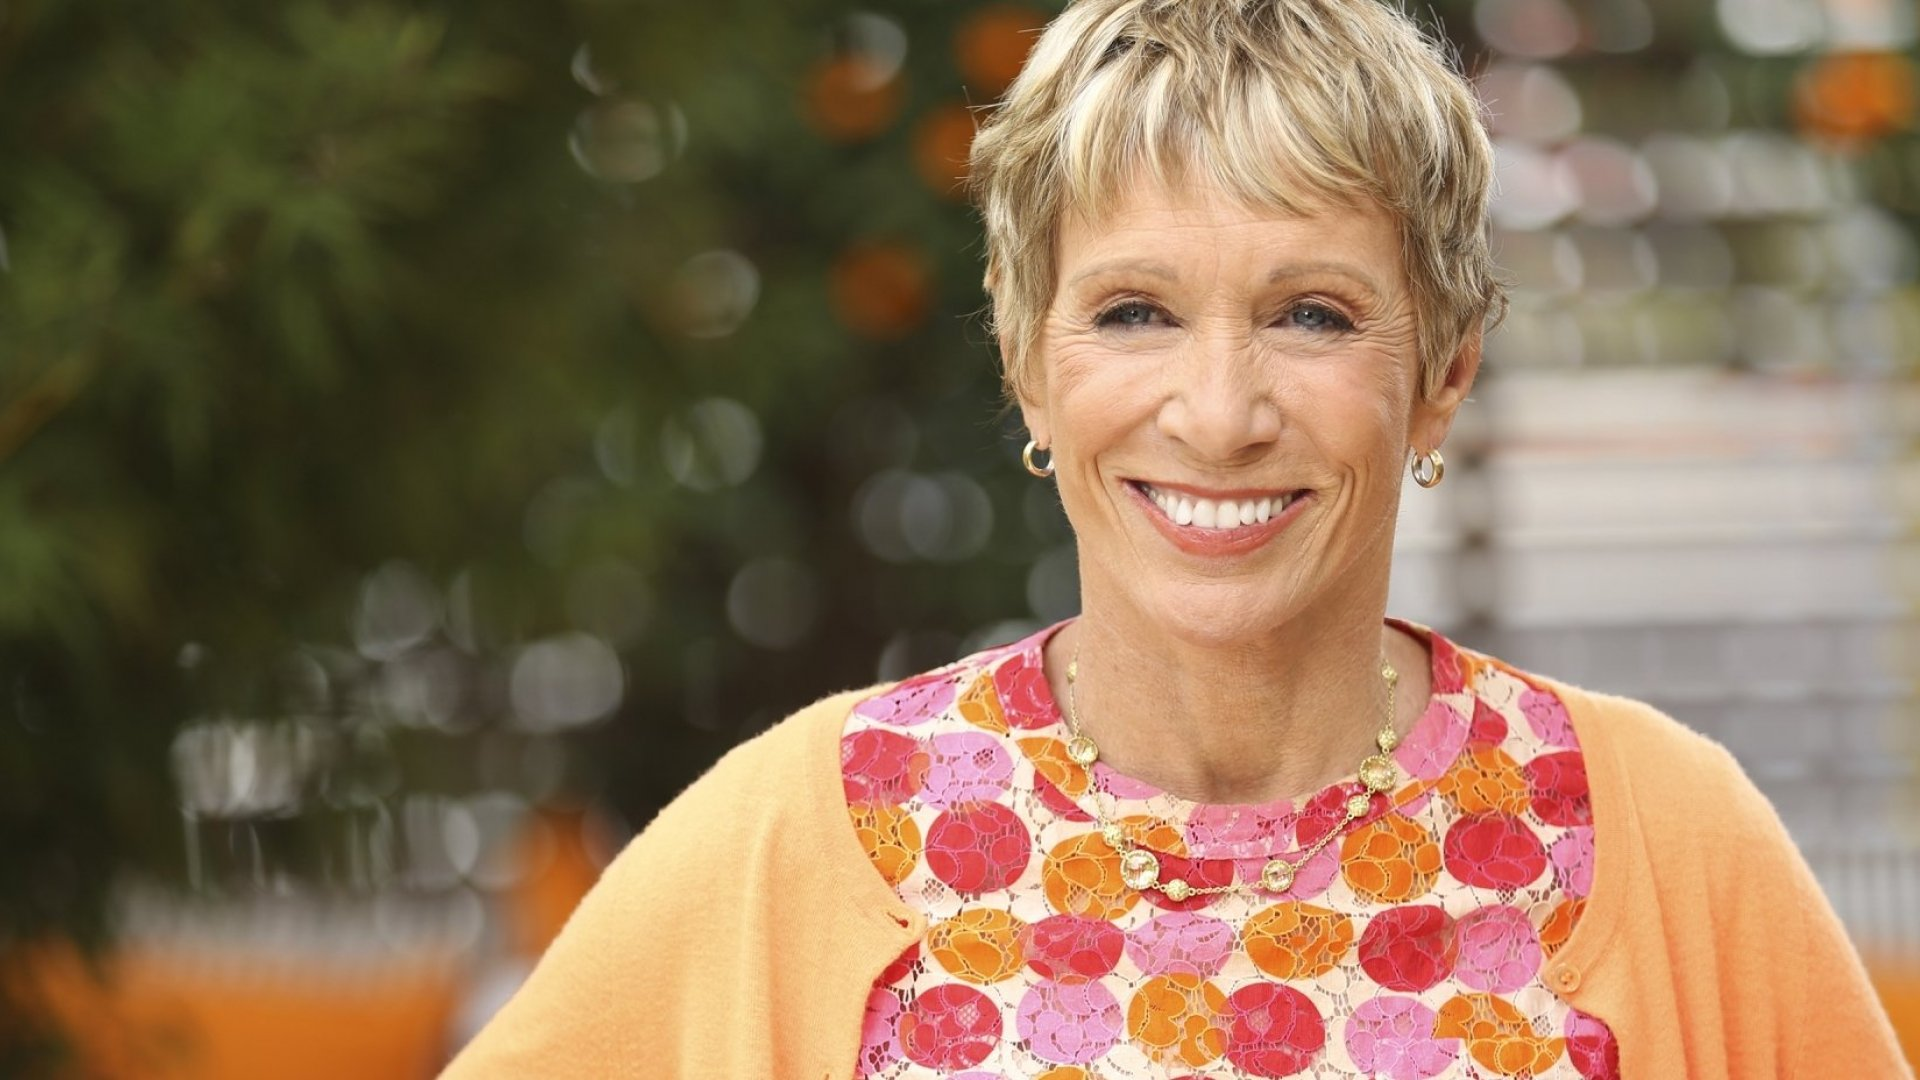 After Facing Rejection, Barbara Corcoran Wrote 1 Powerful Email That Landed Her on 'Shark Tank'